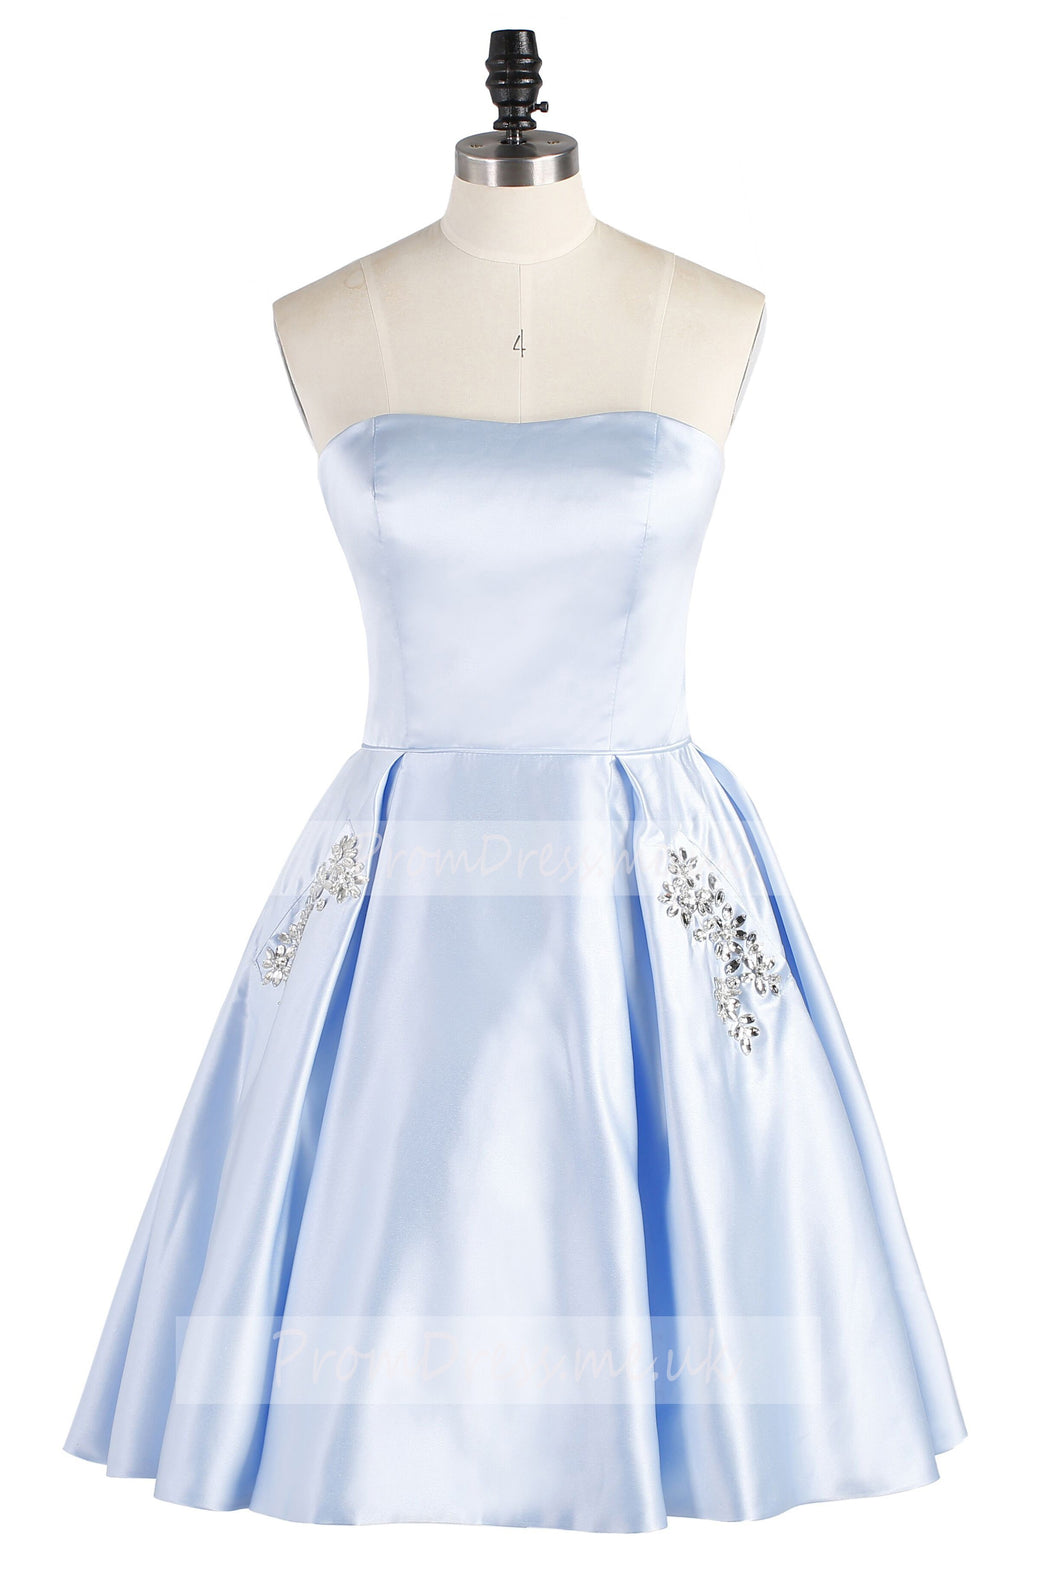 Light Sky Blue Strapless Satin Lace up Knee Length with Pockets Homecoming Dresses RS836